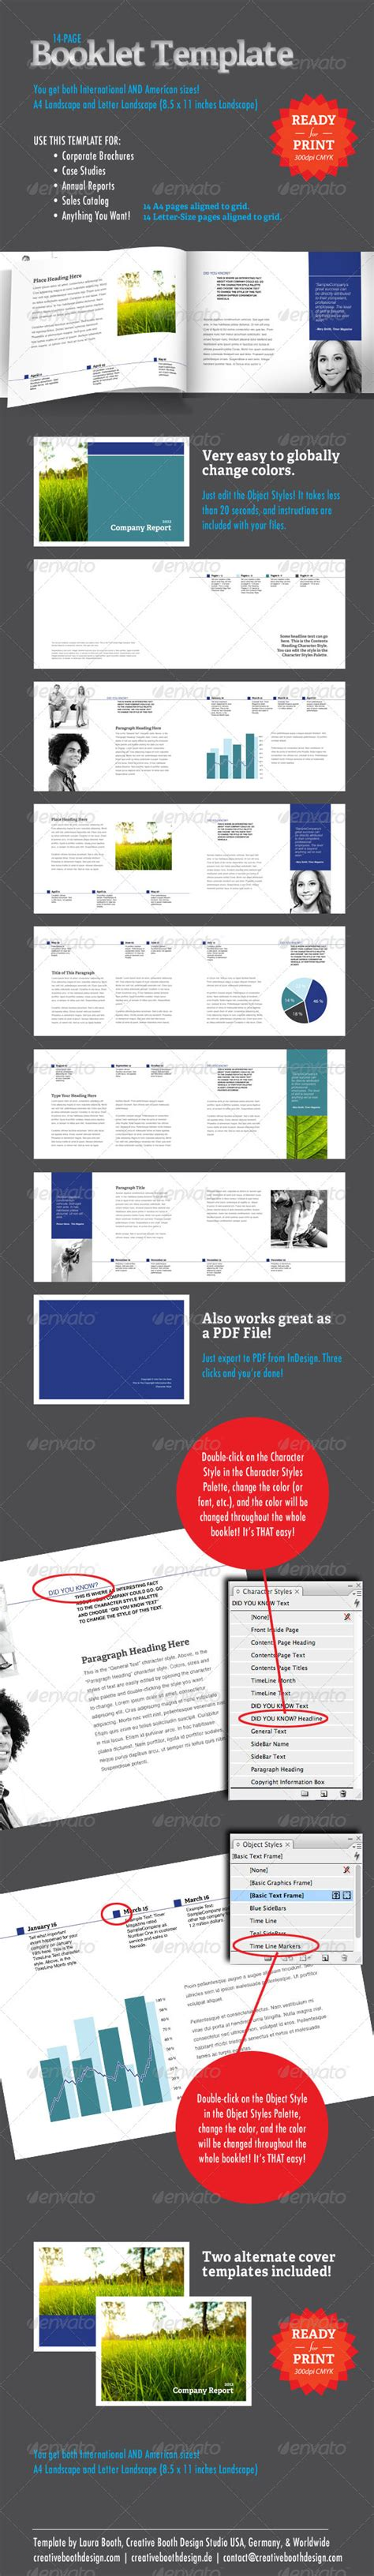 Templates For 8 Page Booklet In Indesign 187 Tinkytyler Org Stock Photos Graphics 8 Page Booklet Template Indesign